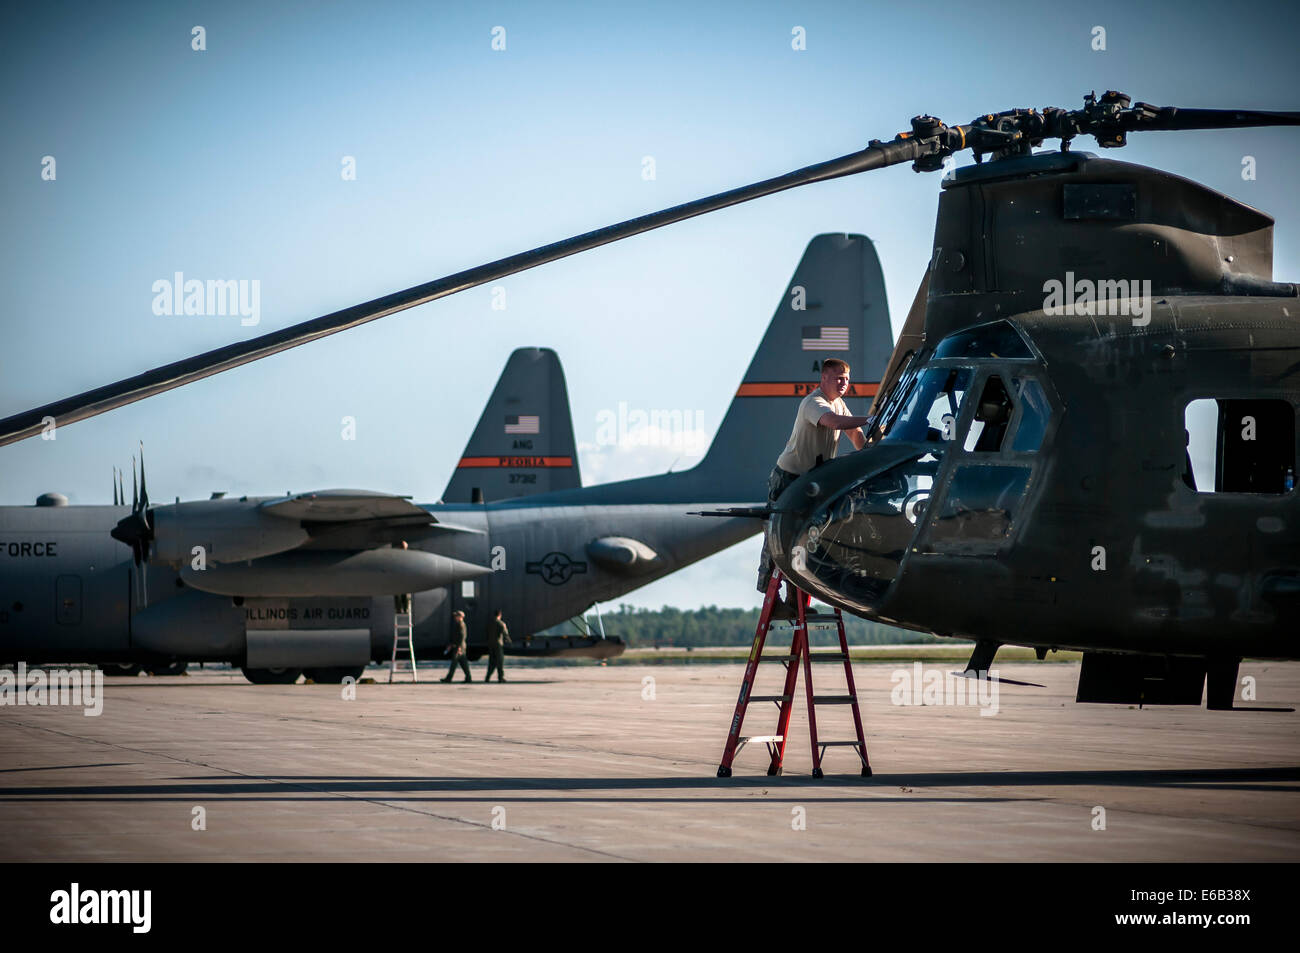 U.S. Army Staff Sgt. Justin Marshall washes cockpit windows during a preflight check on a CH-47 Chinook helicopter - Stock Image